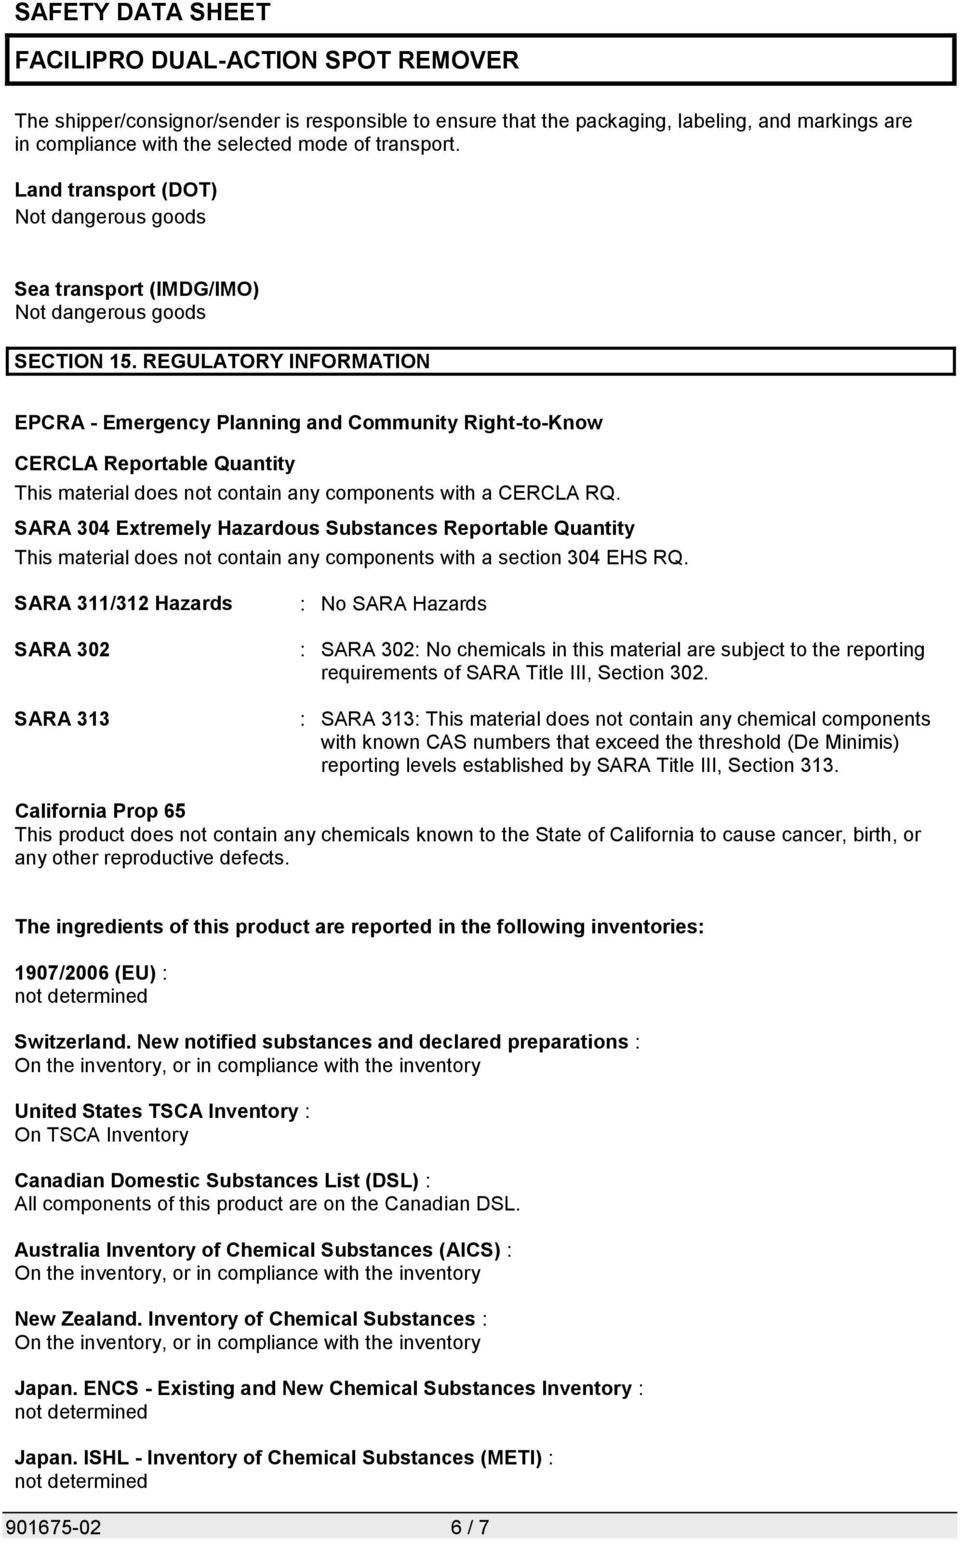 REGULATORY INFORMATION EPCRA - Emergency Planning and Community Right-to-Know CERCLA Reportable Quantity This material does not contain any components with a CERCLA RQ.